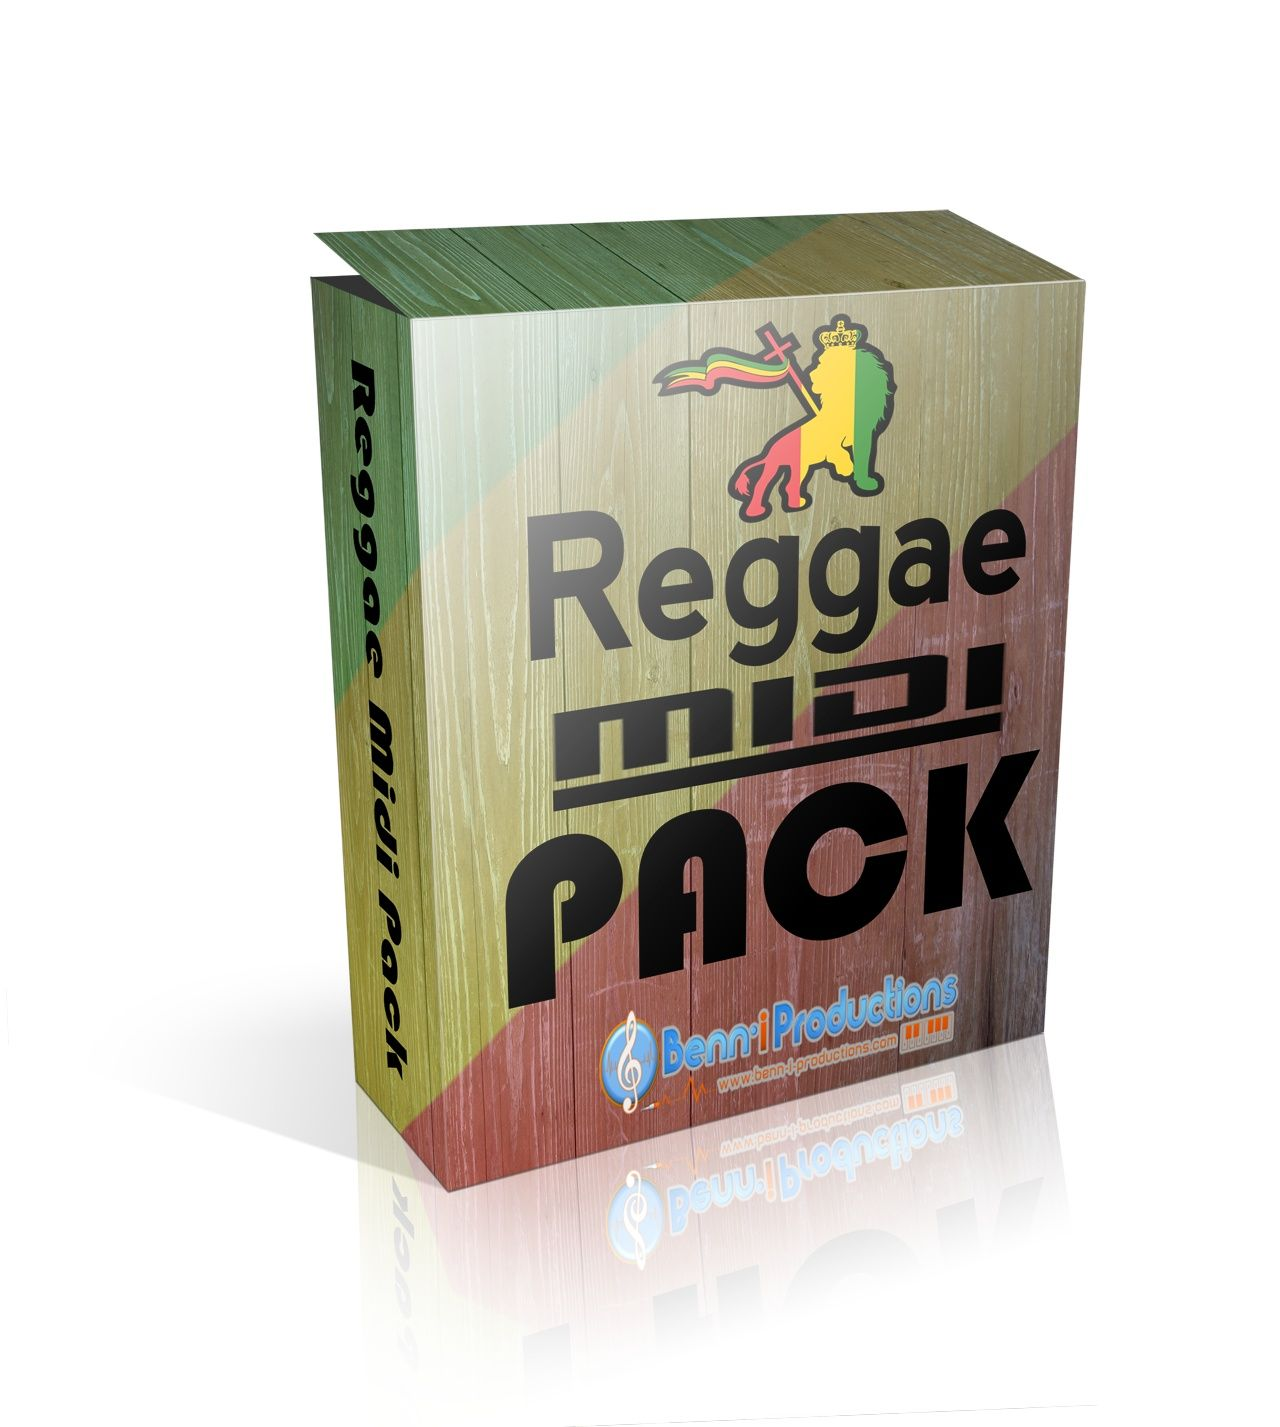 Make awesome reggae and dancehall tracks and take off for a